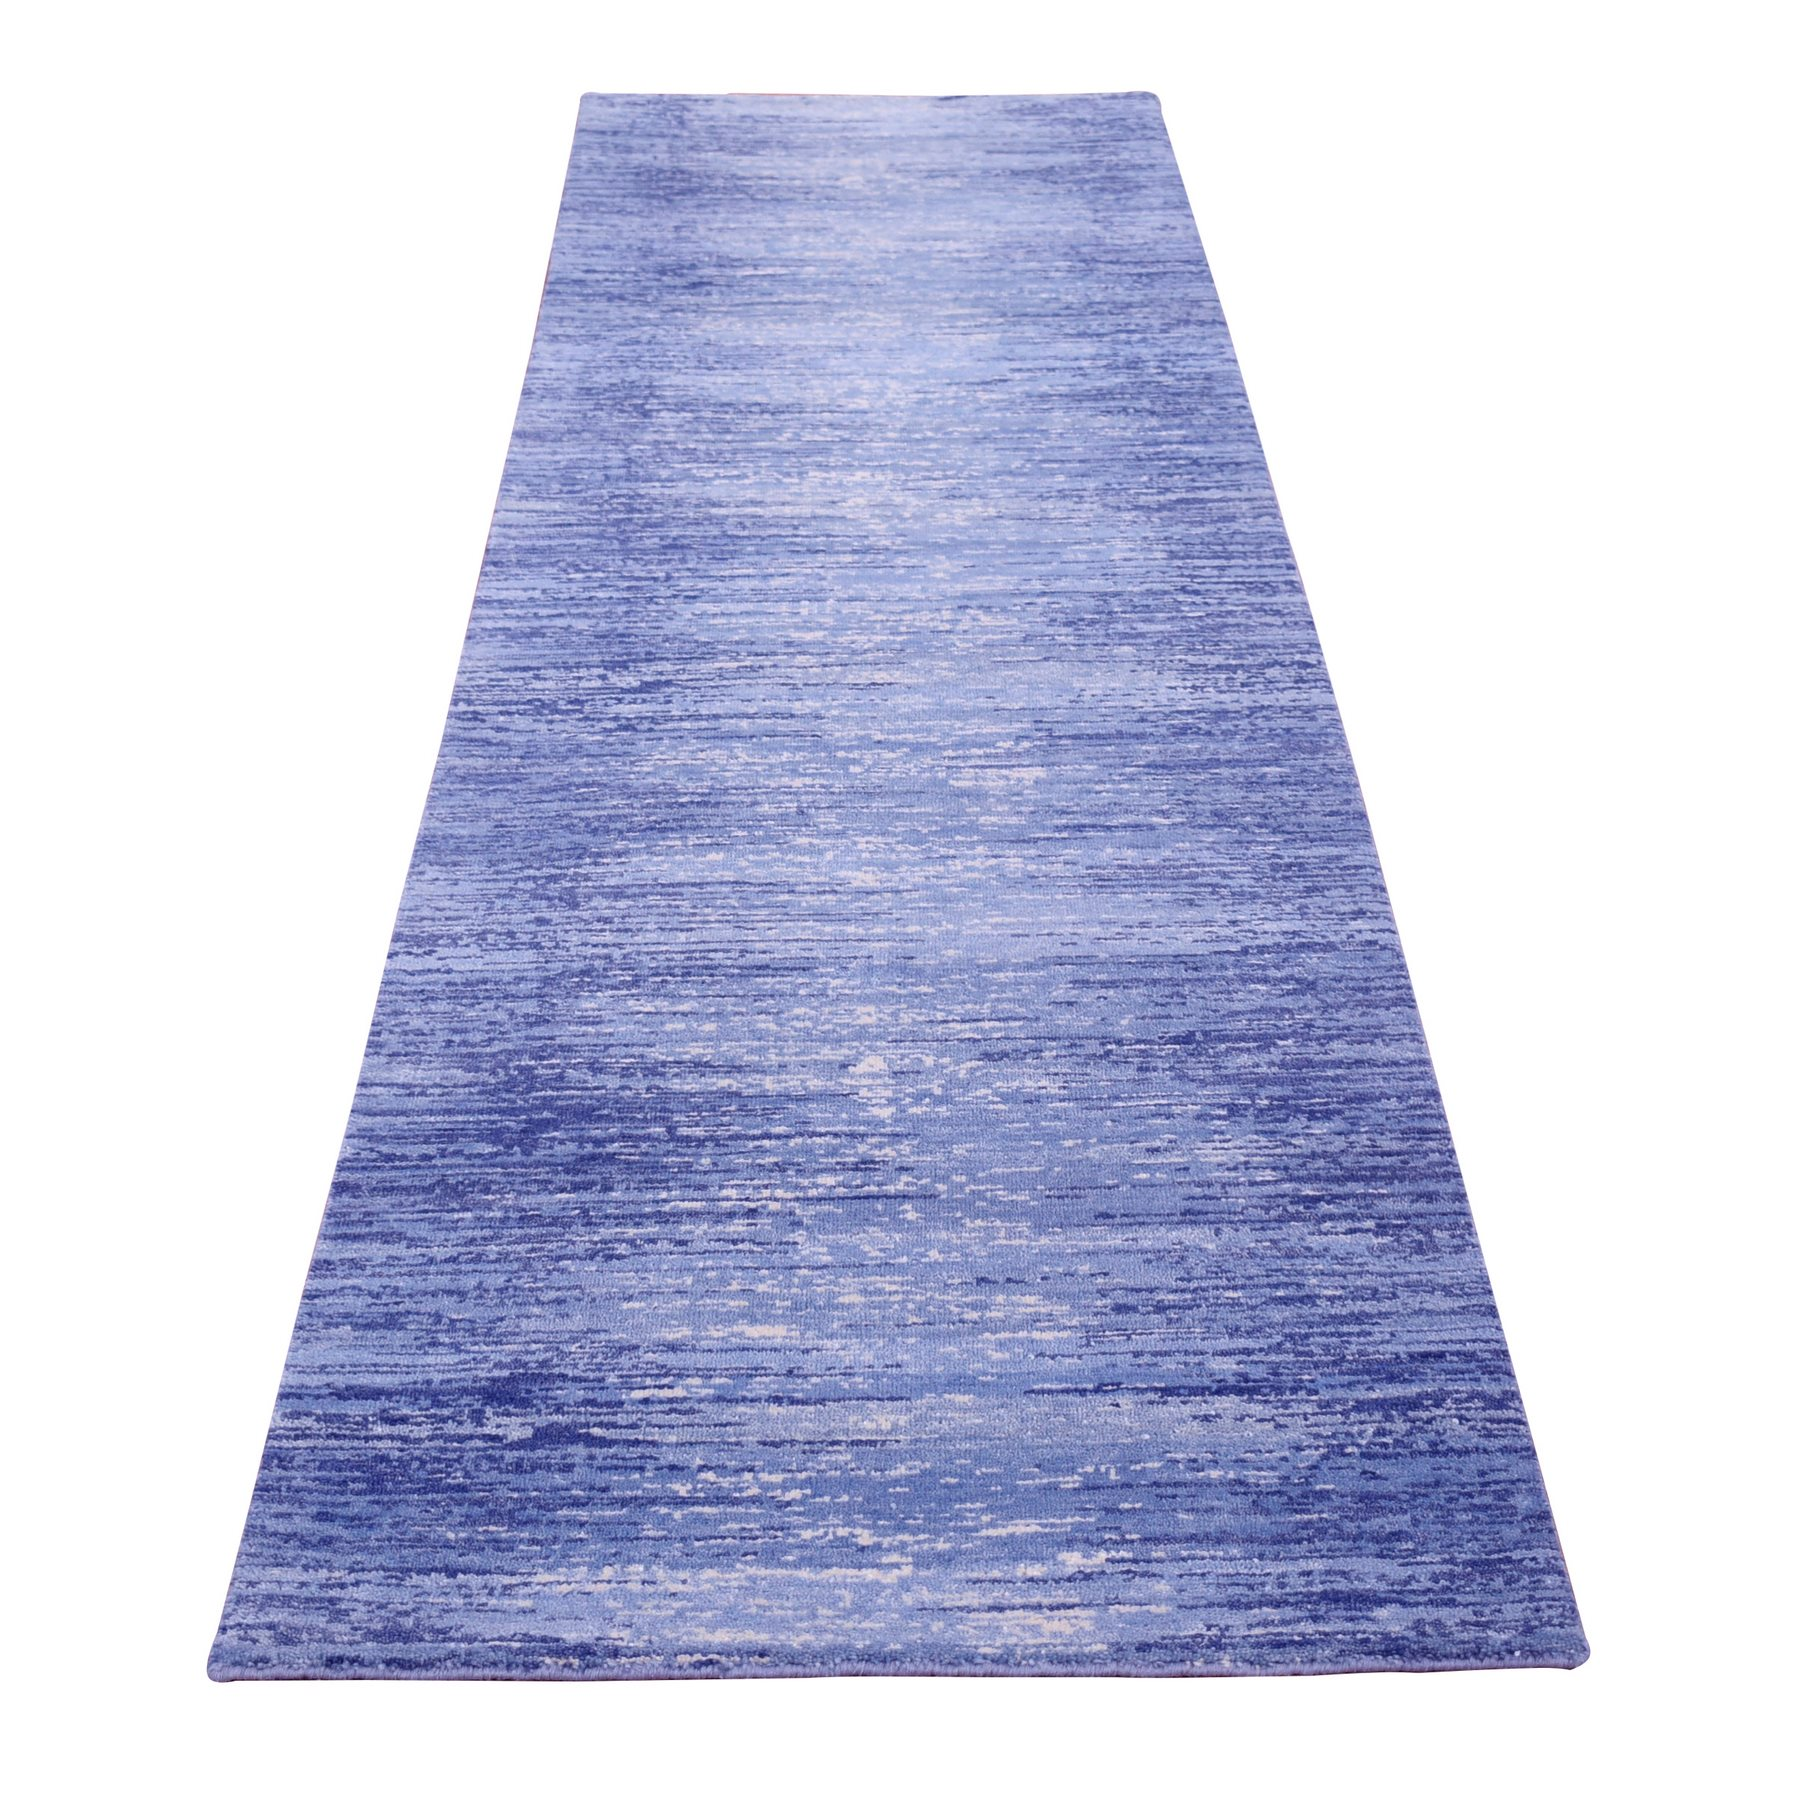 Mid Century Modern Collection Hand Knotted Blue Rug No: 1133760